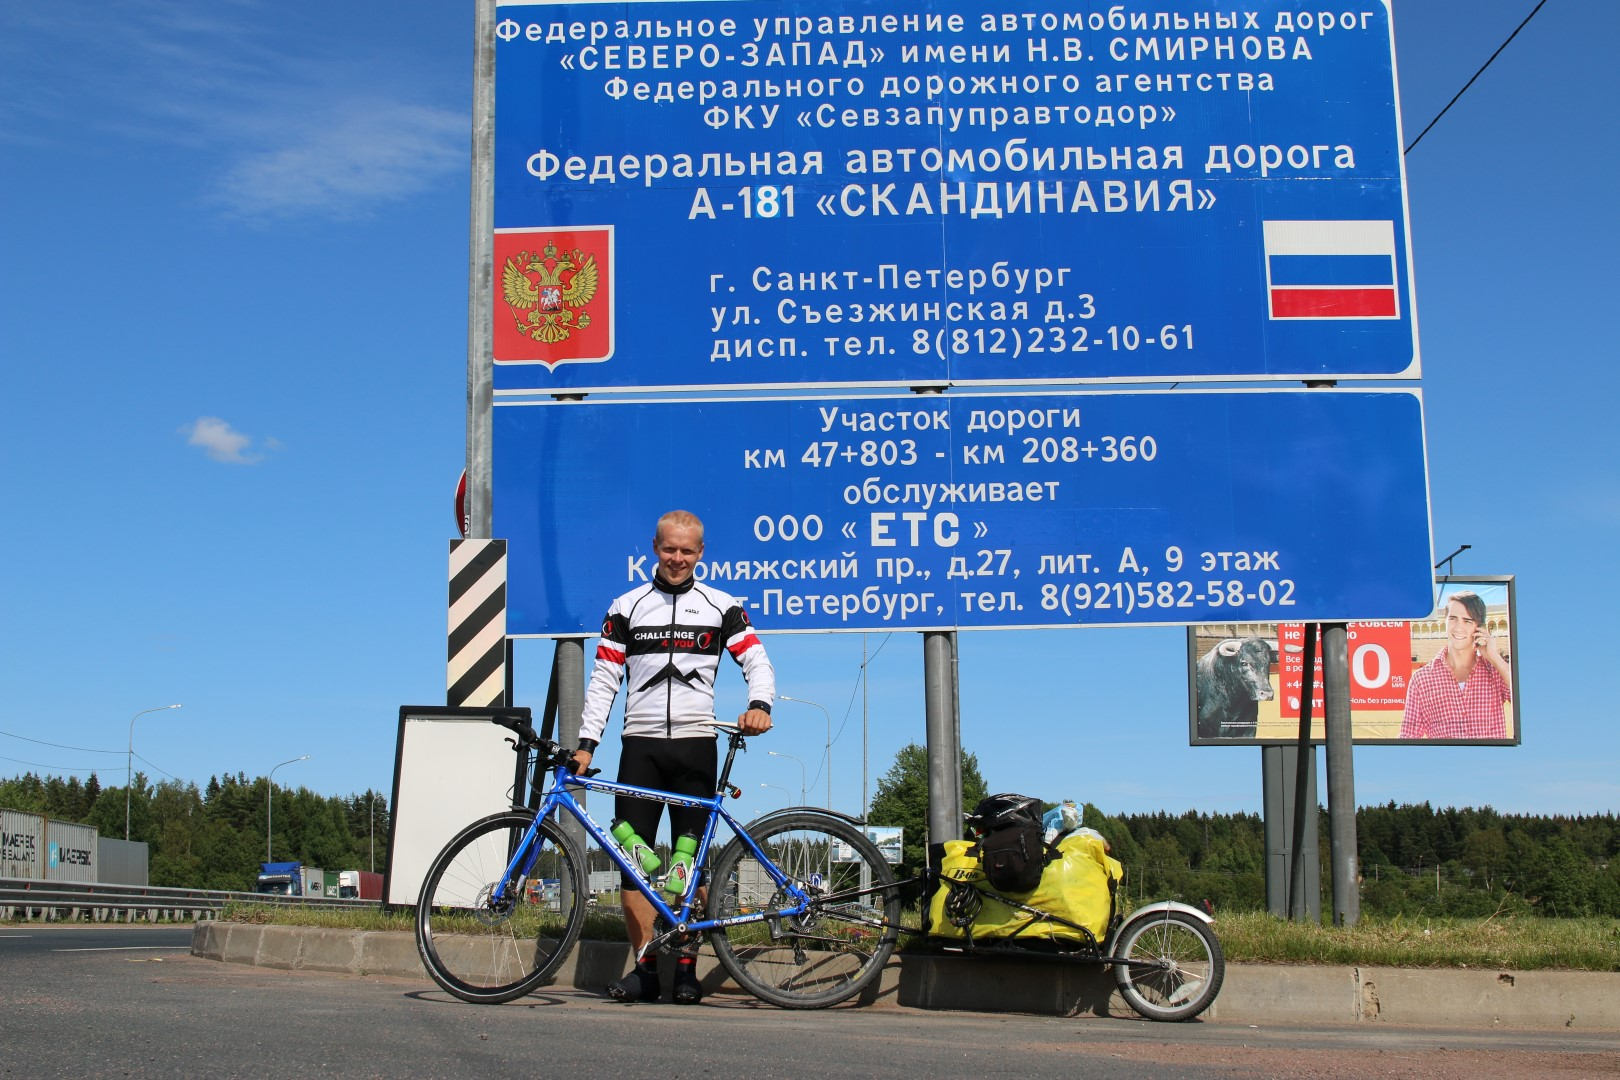 Back  on  the  bicycle,  Russia,  it's  finally  your  turn  for  a  visit!